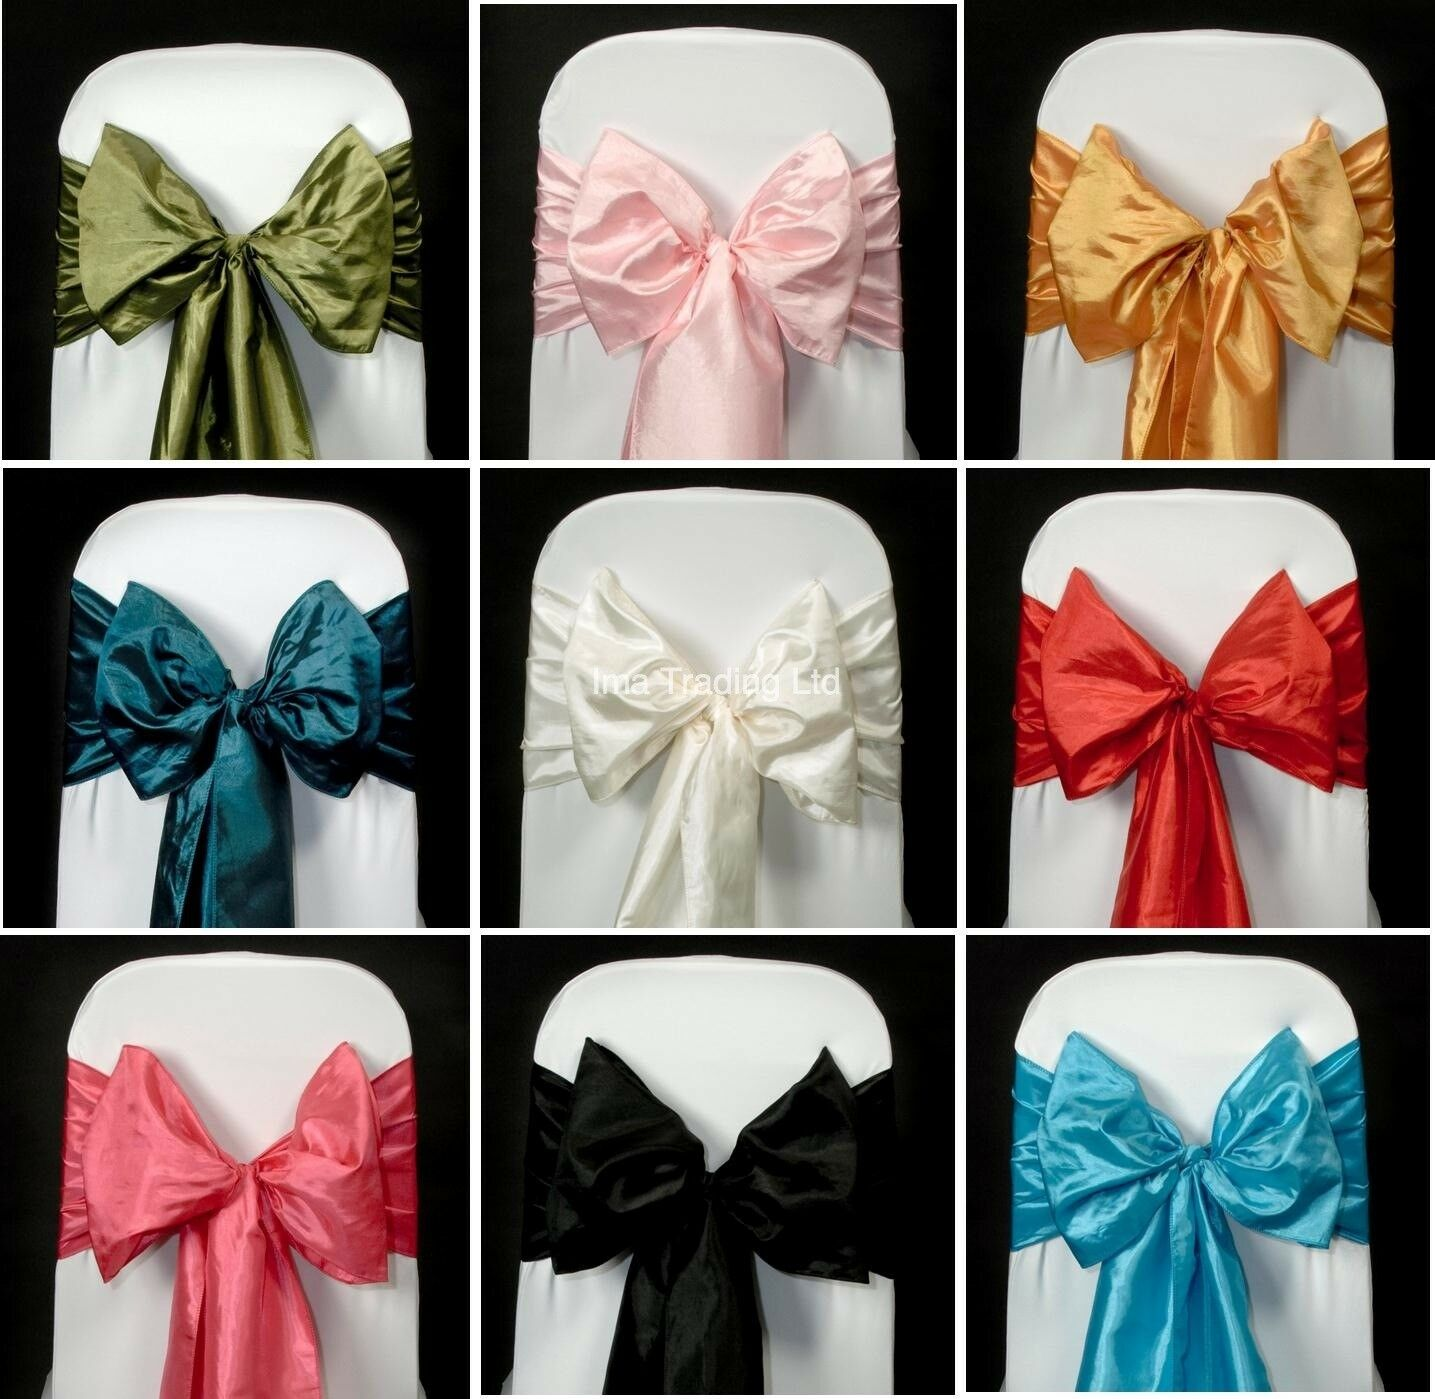 50 en taffetas sashes, beaucoup de couleurs disponibles